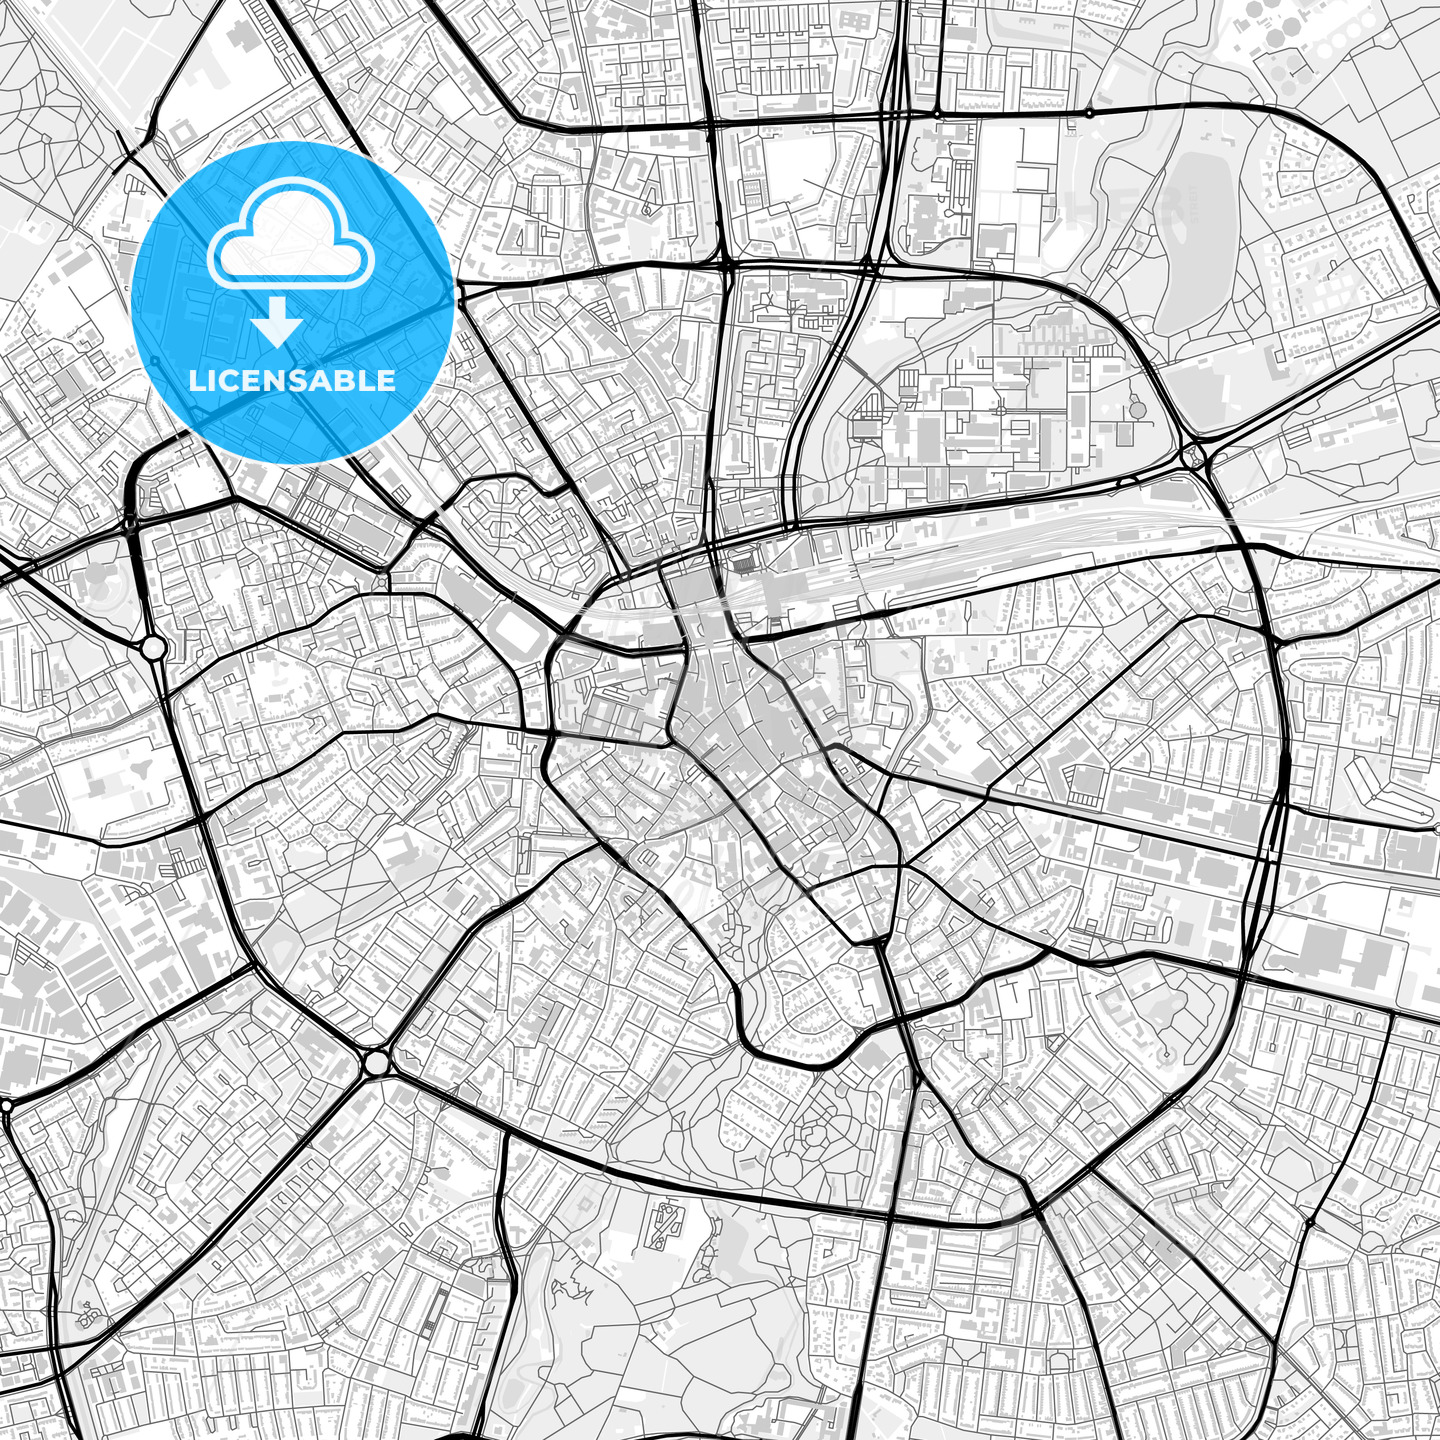 Downtown map of Eindhoven, Netherlands